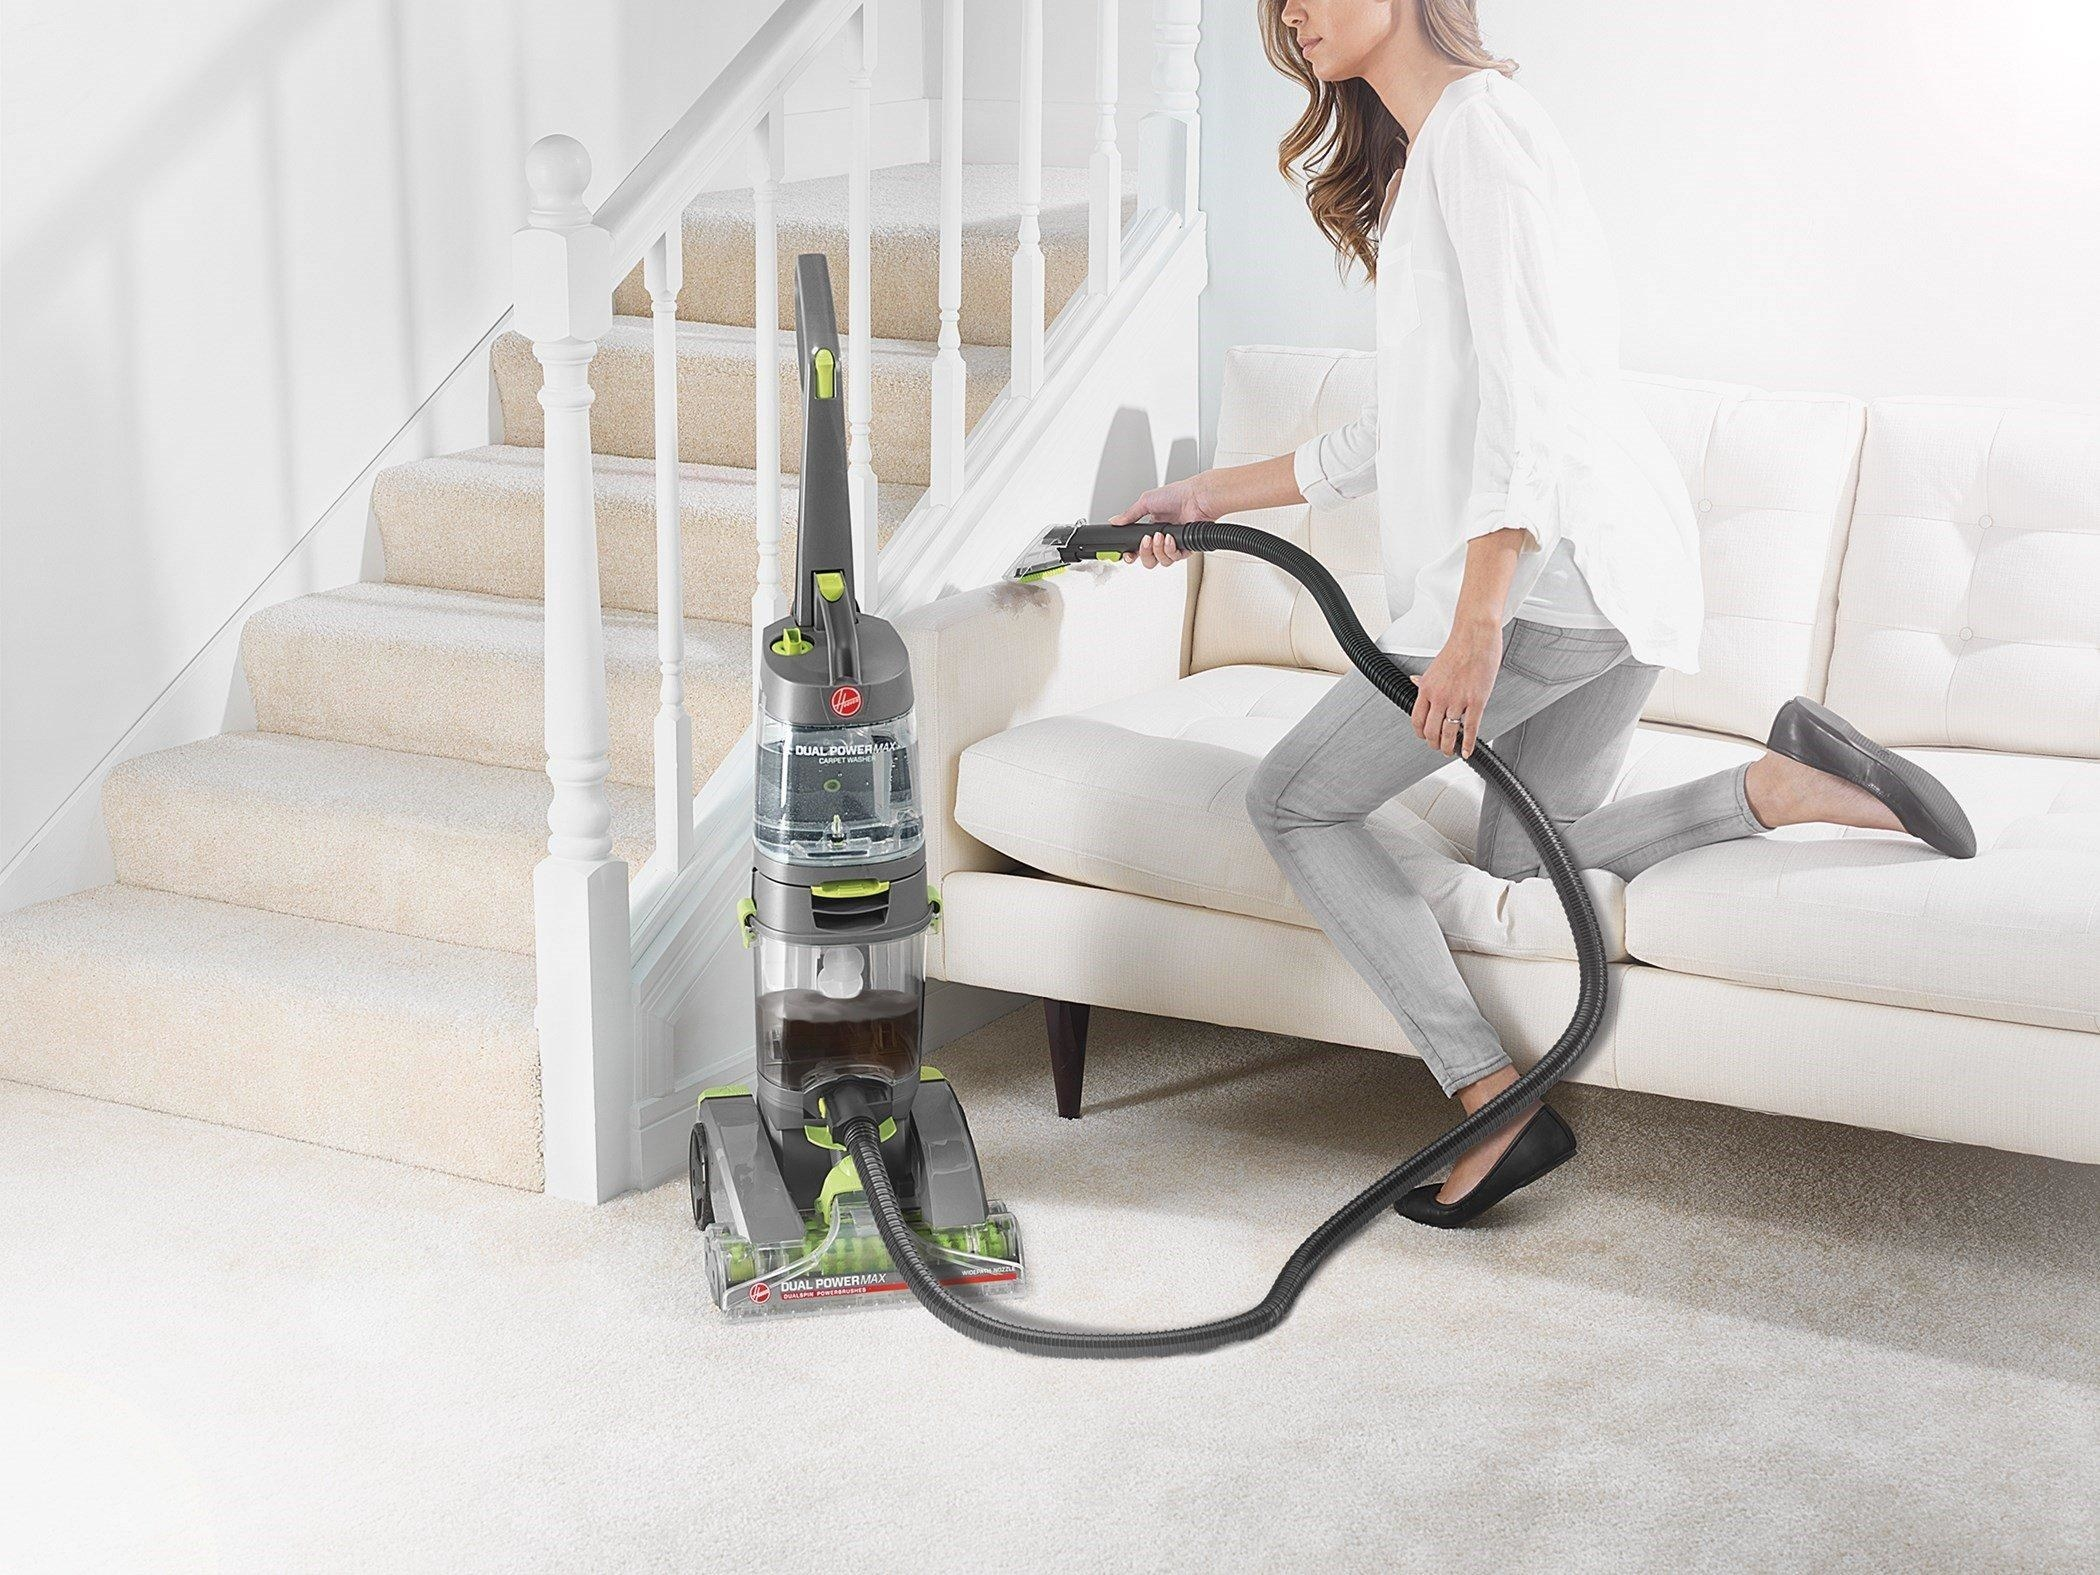 Model using grey and green vacuum in living room